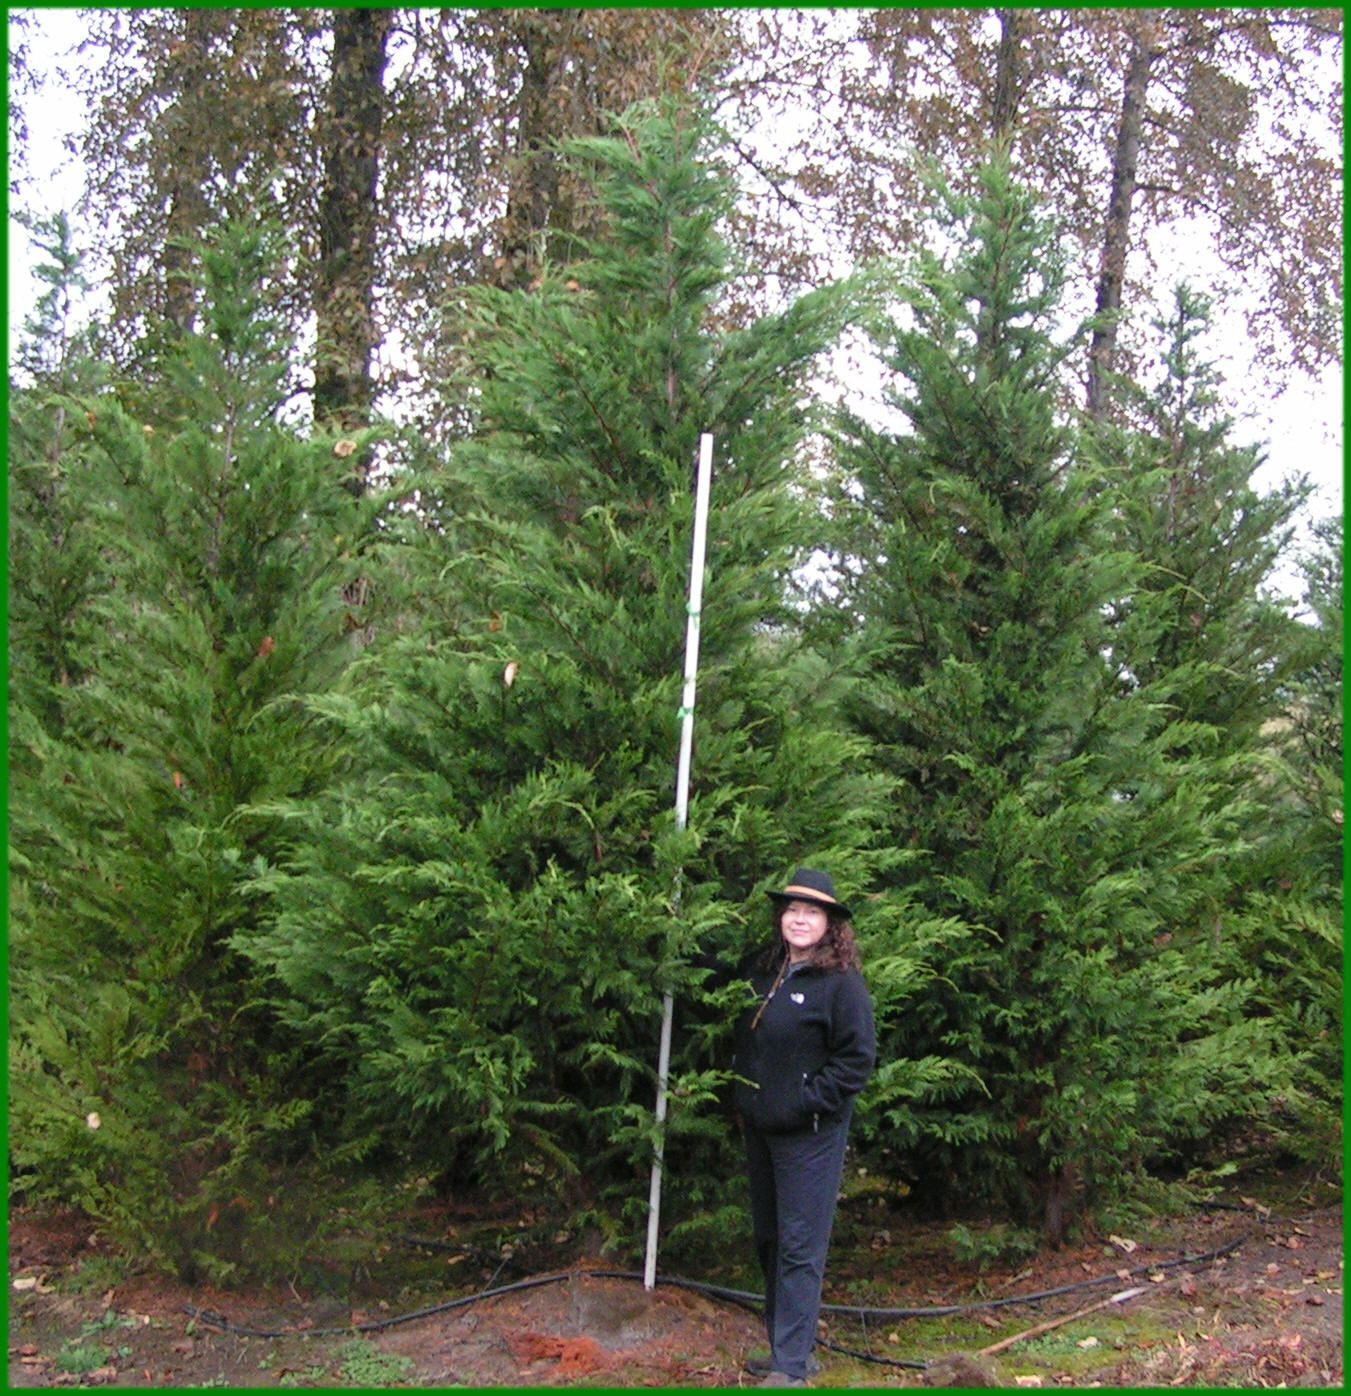 Leyland Cypress Deer Resistant Evergreens For Privacy Screens And Hedges In New Jersey